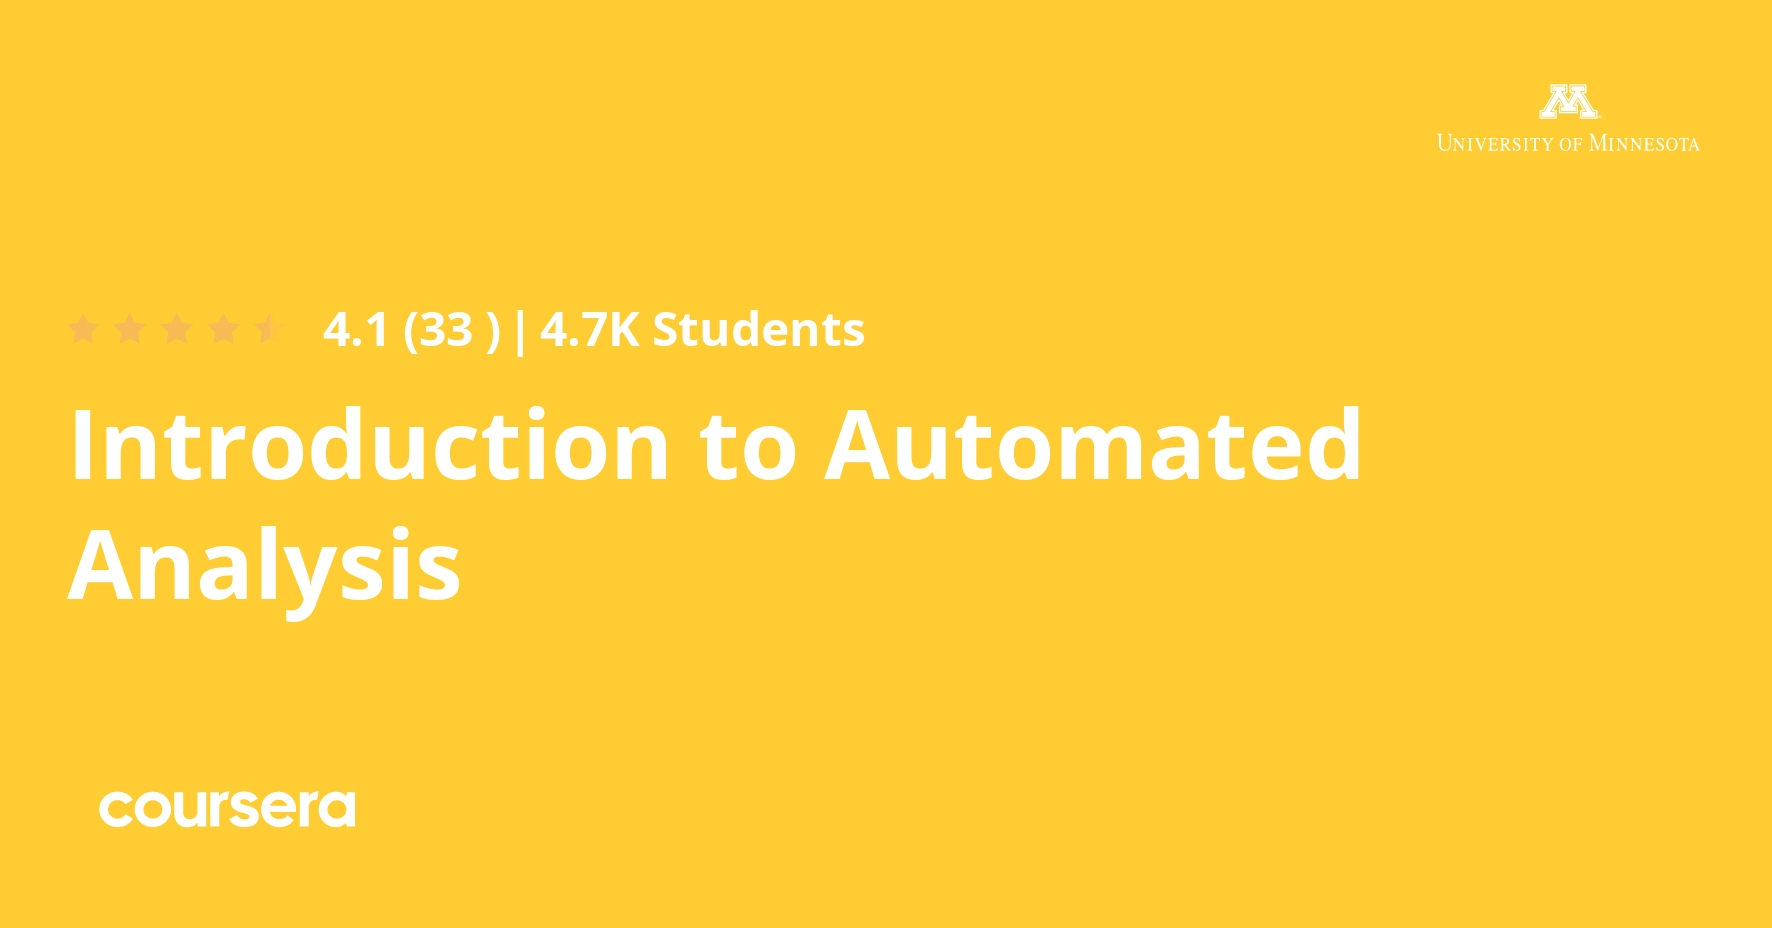 Introduction to Automated Analysis